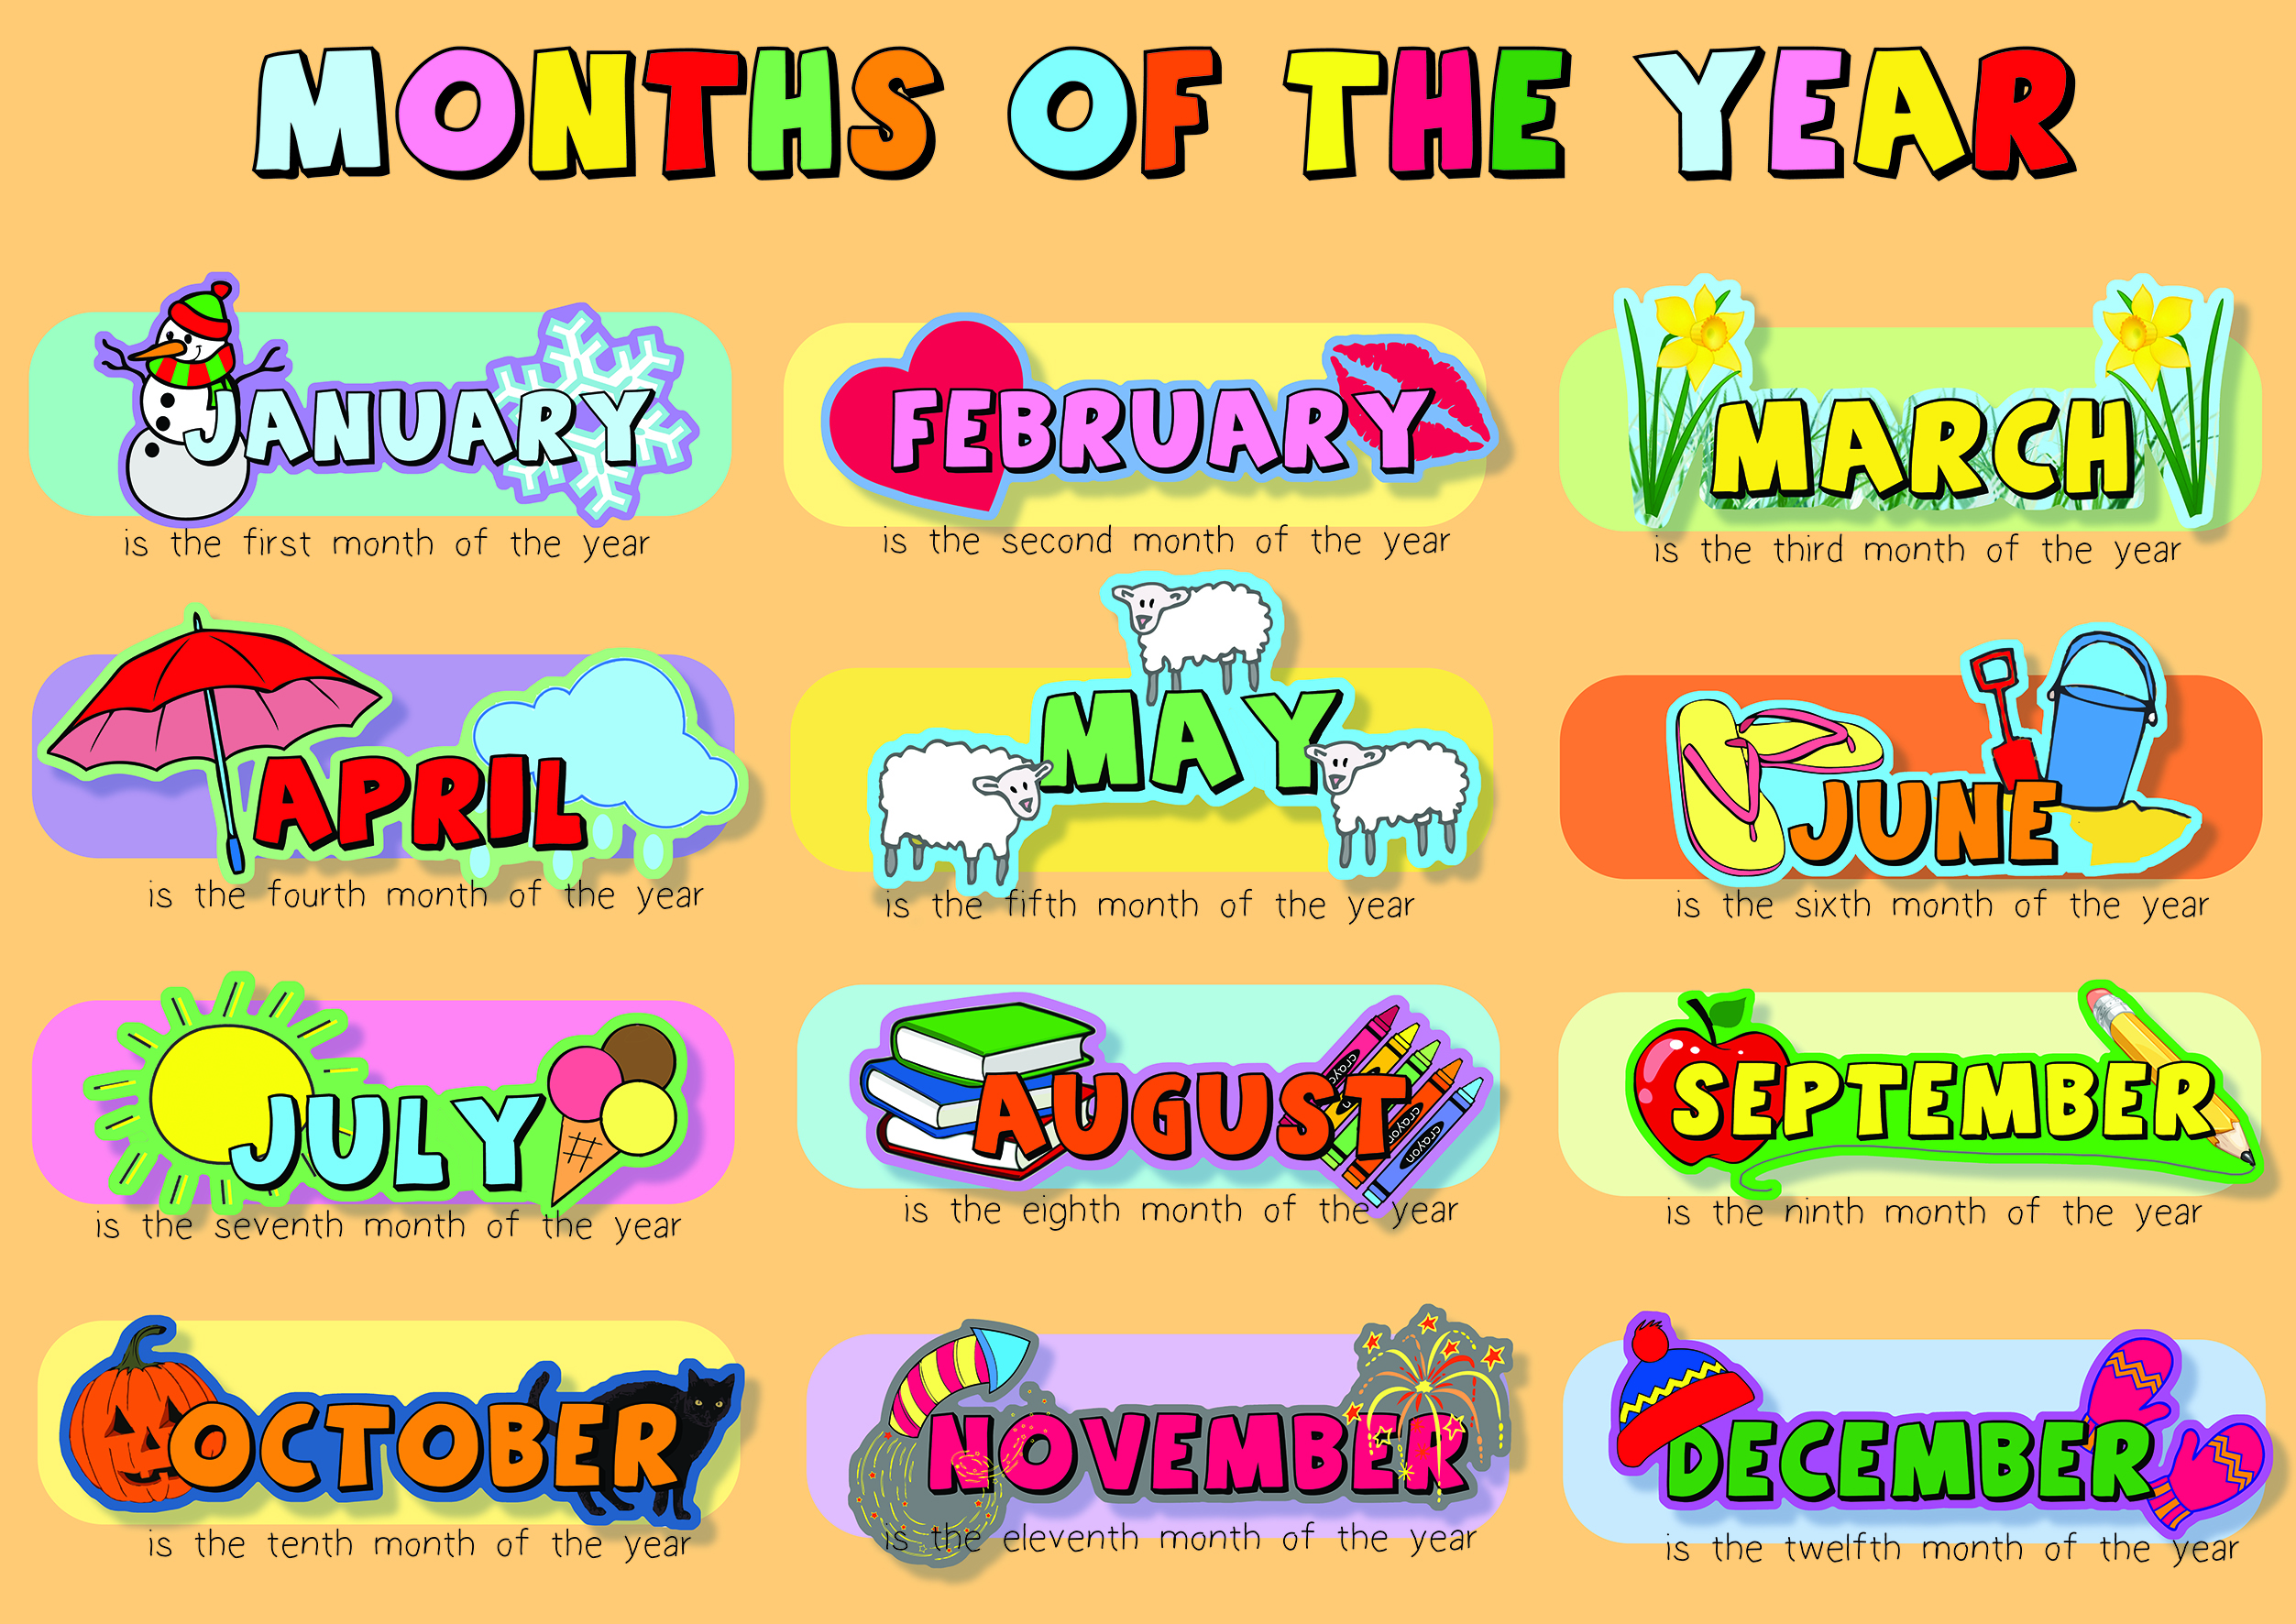 months of the year poster spaceright europe ltd